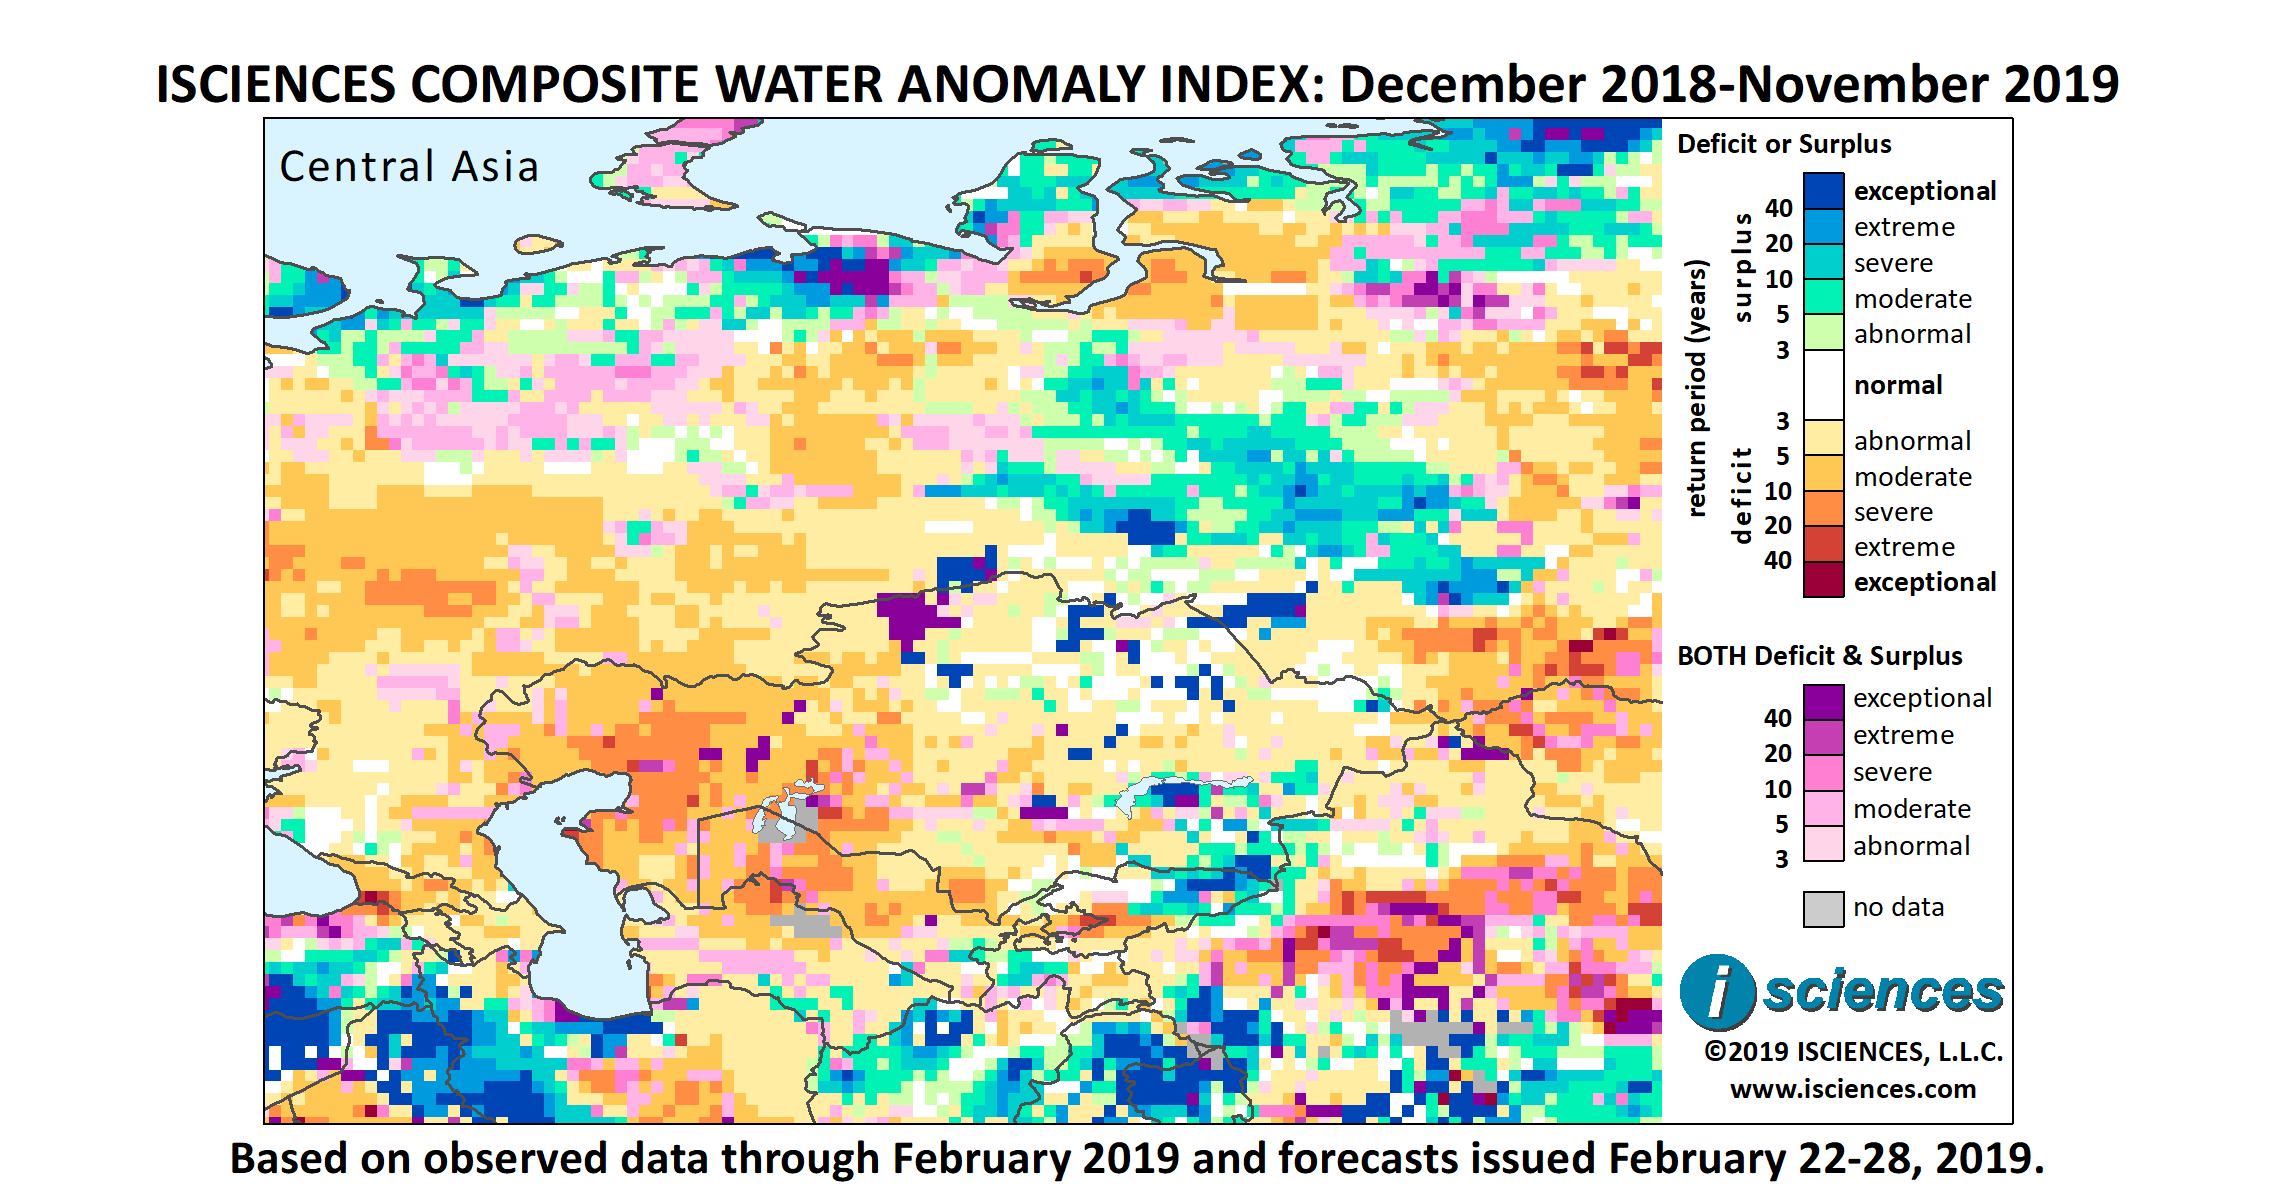 ISciences_CentralAsia_R201902_12mo_twit_pic.png